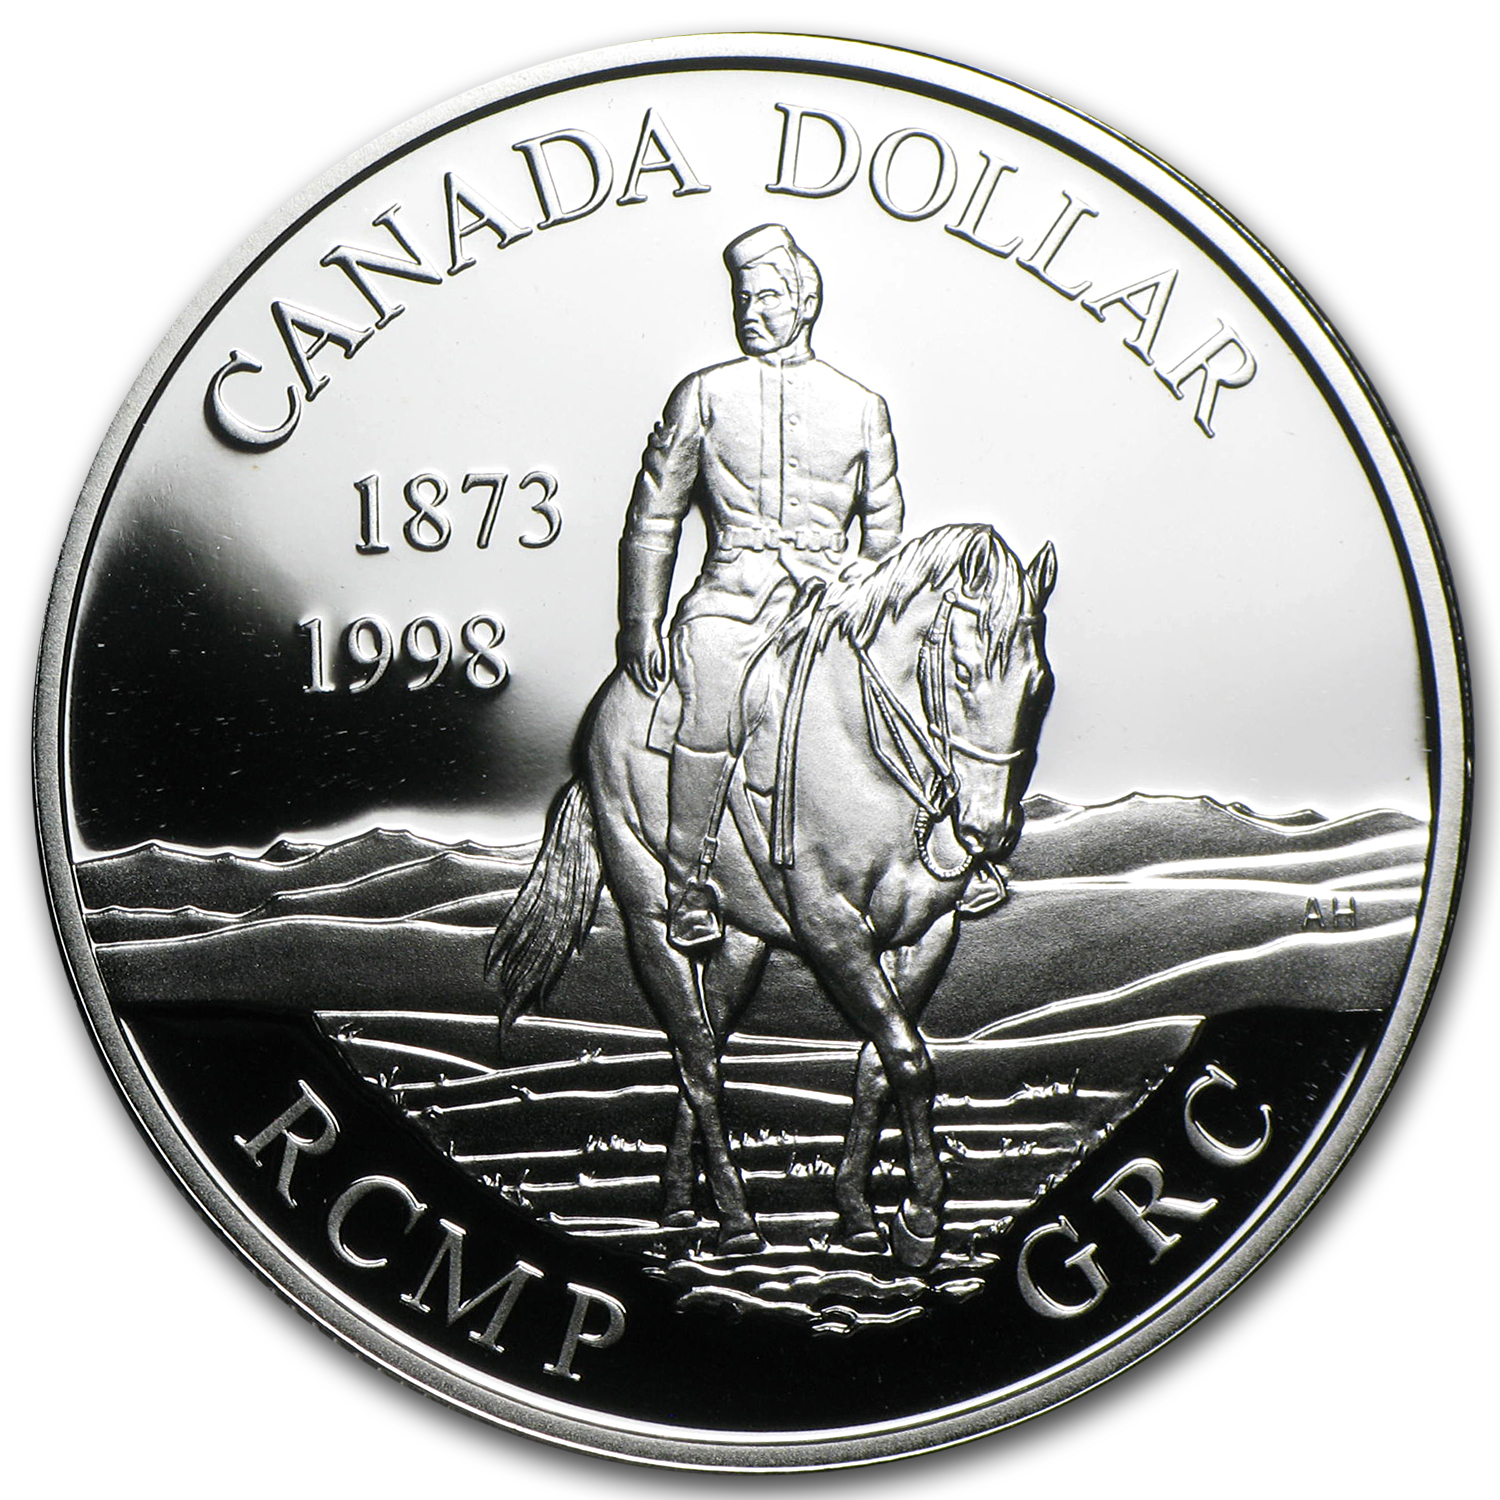 1999 Canada Silver $1 Royal Canadian Mounted Police Proof